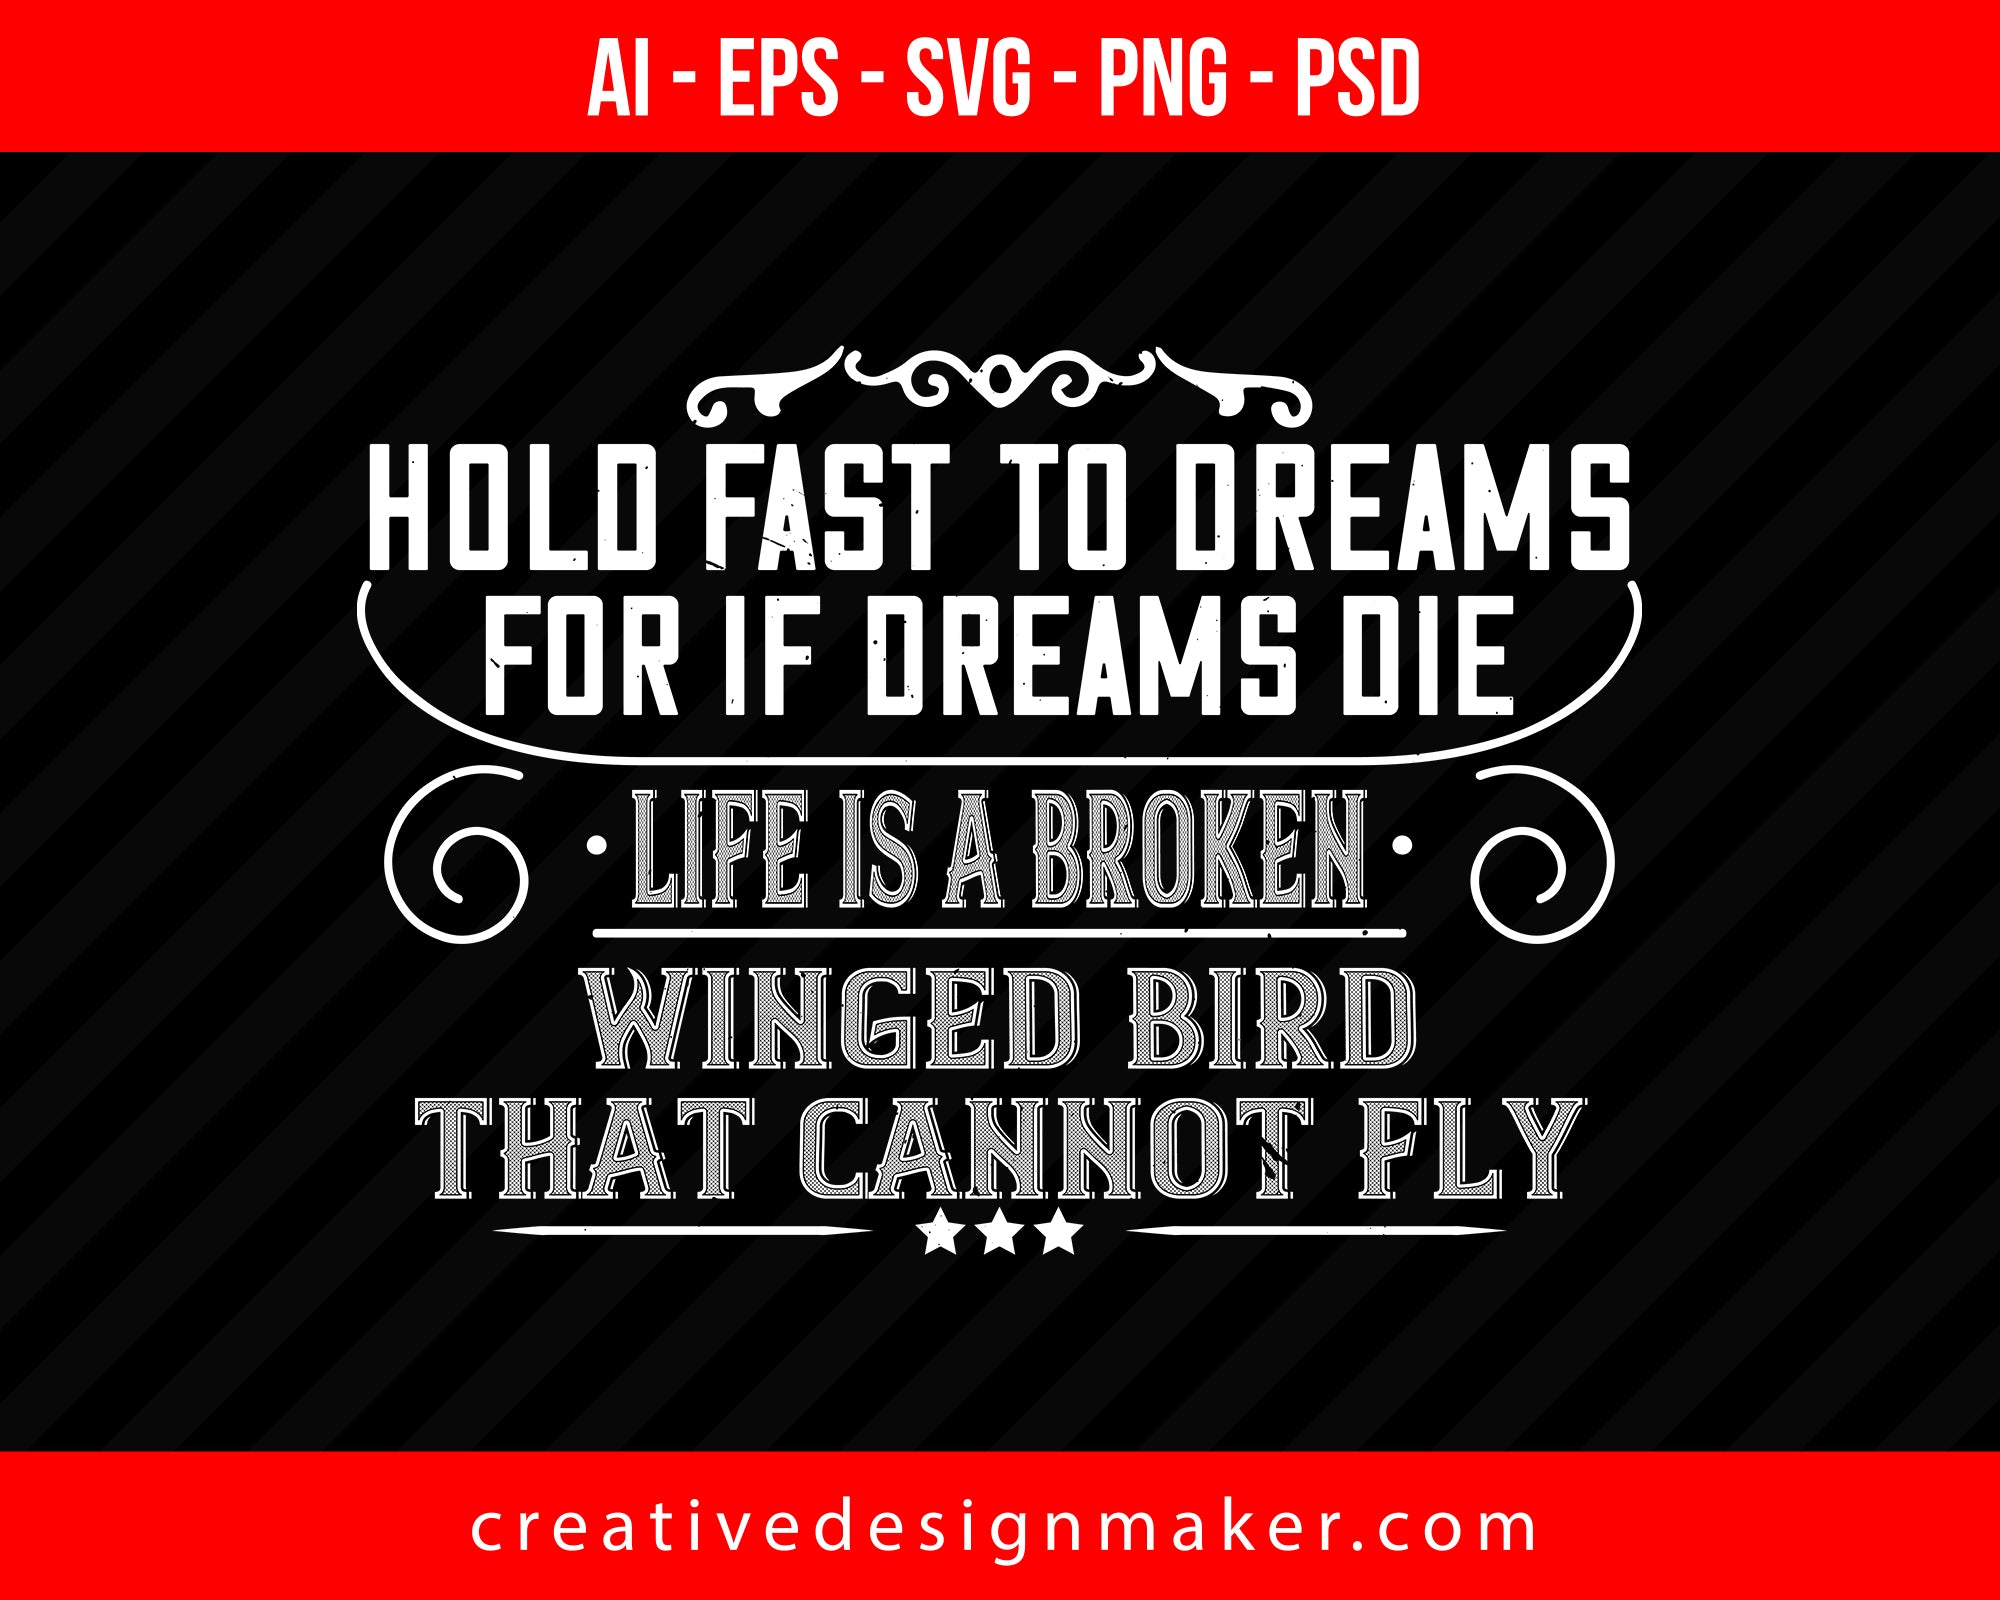 Hold fast to dreams for if dreams die, life is a broken winged bird that cannot fly Women's Day Print Ready Editable T-Shirt SVG Design!